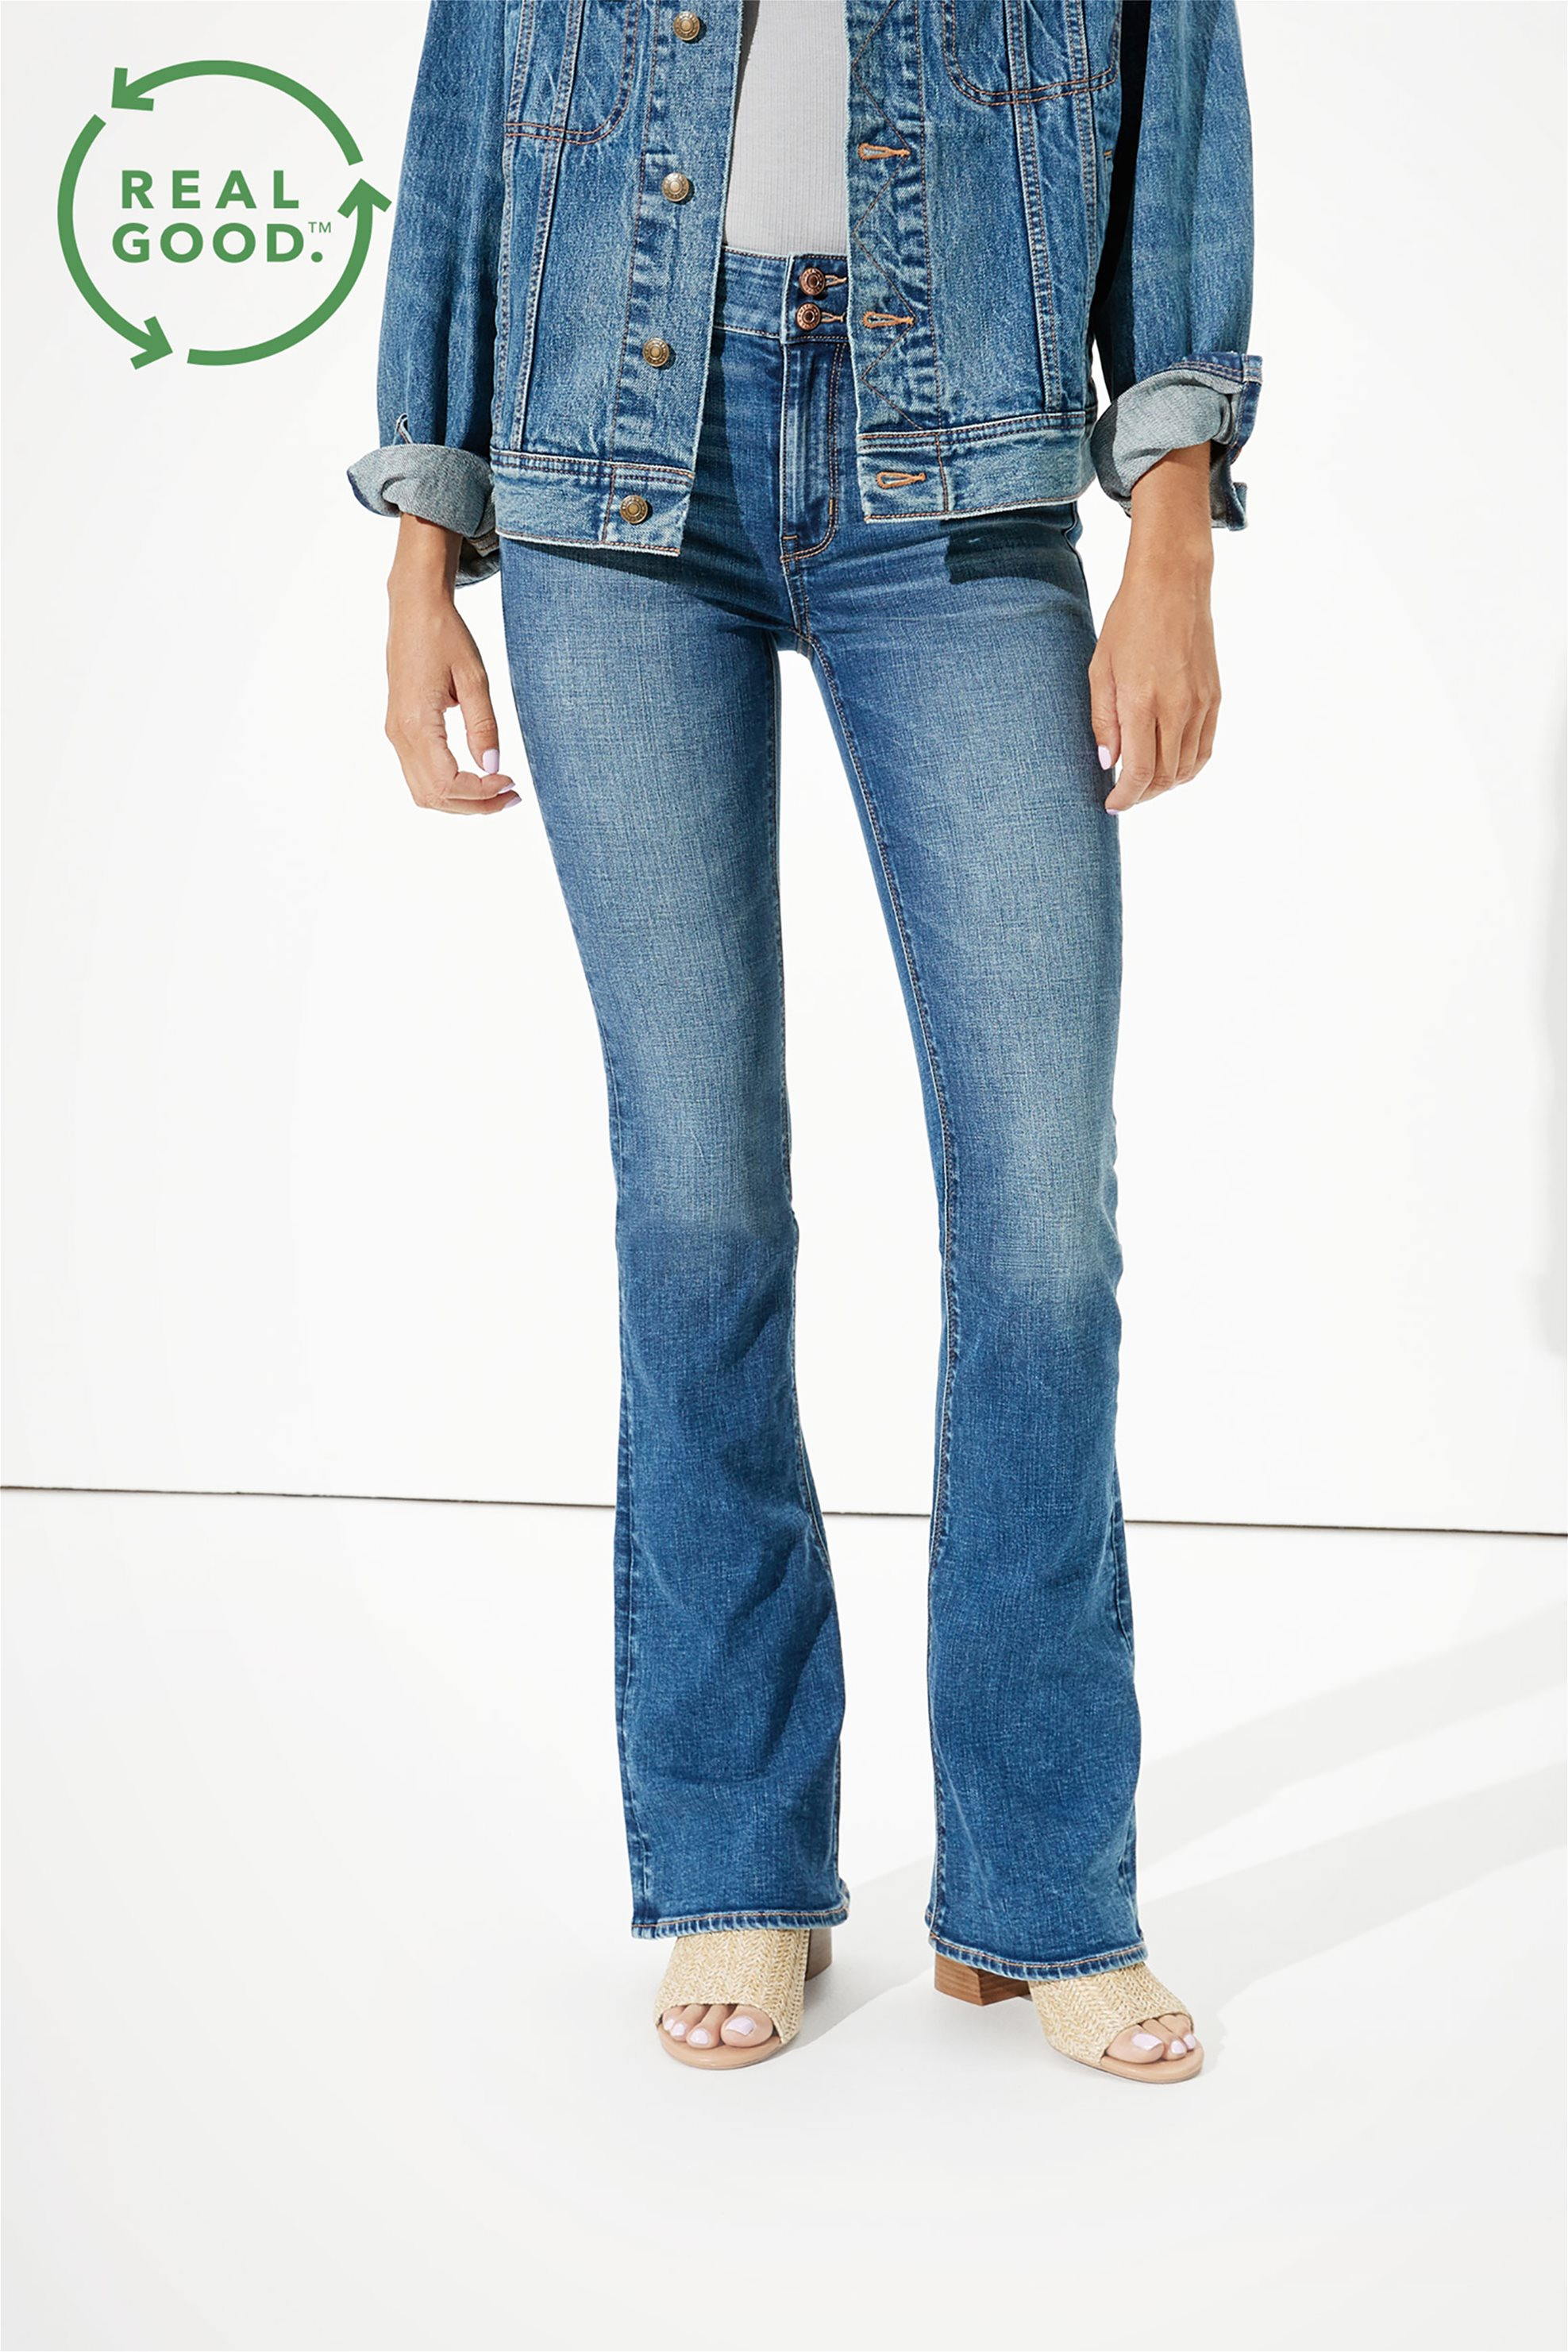 AE High-Waisted Artist Flare Jean - 1435-2850-851 - Μπλε